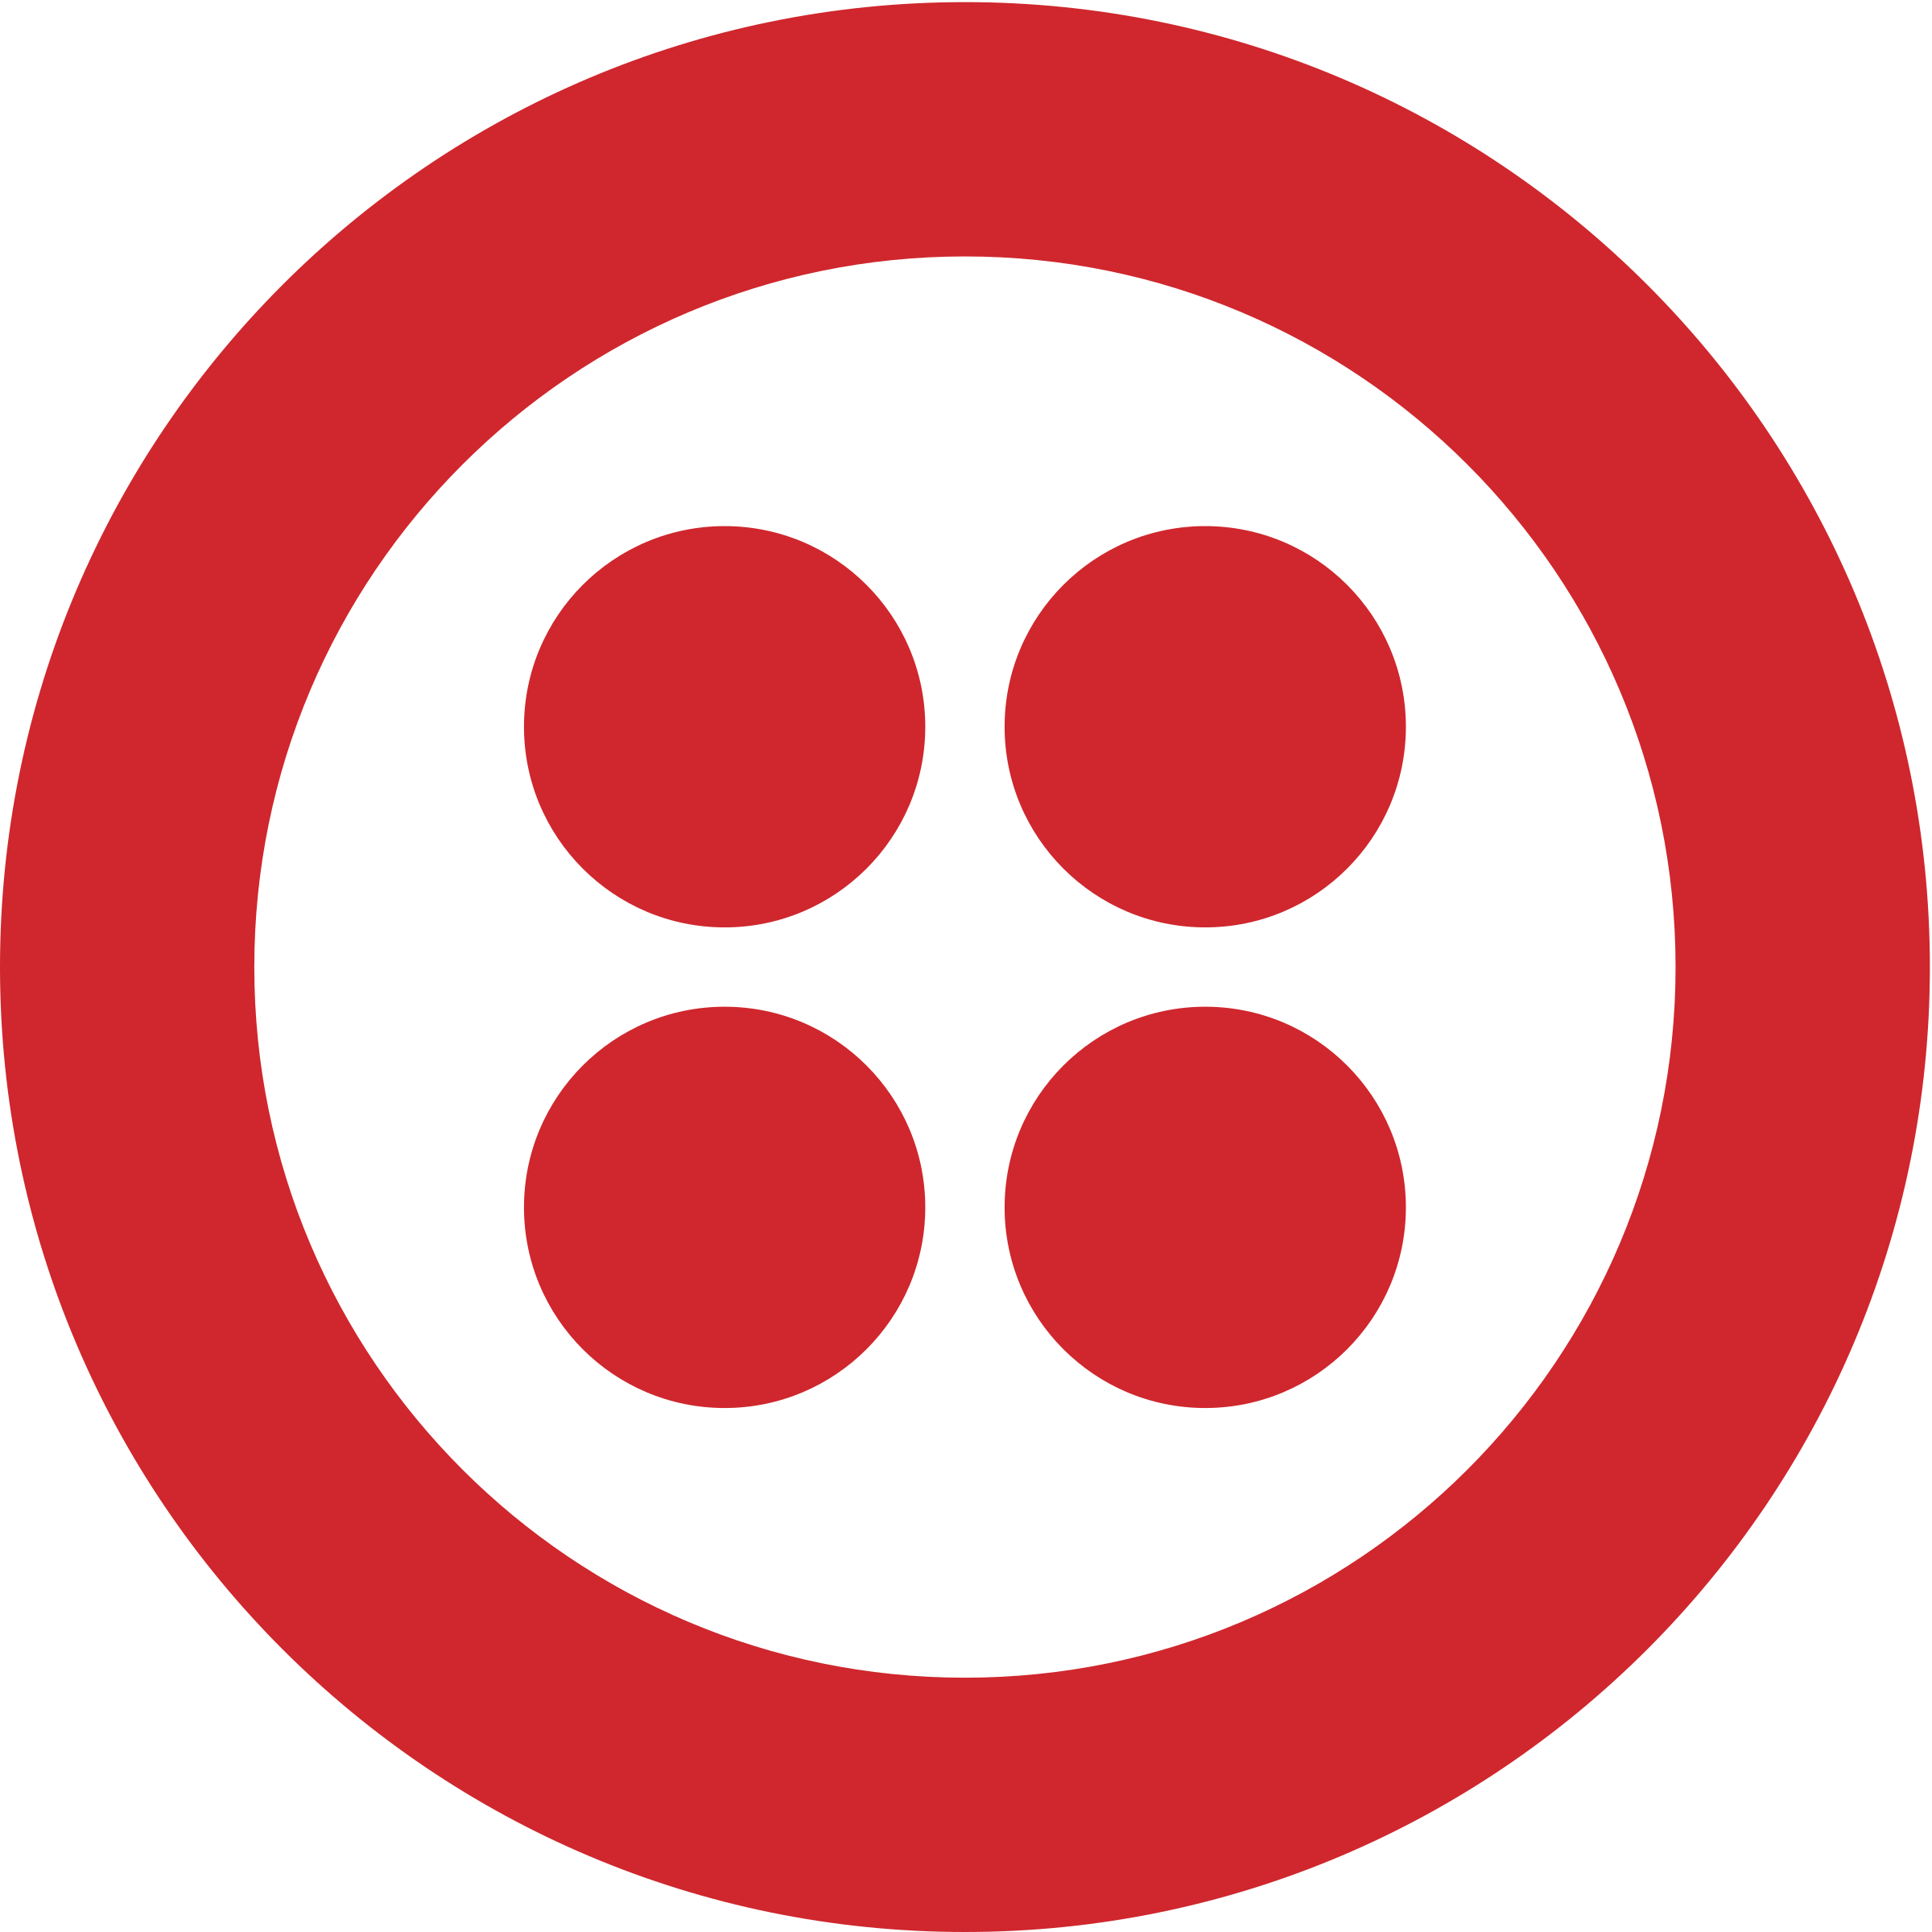 Twilio Logo PNG Transparent & SVG Vector.